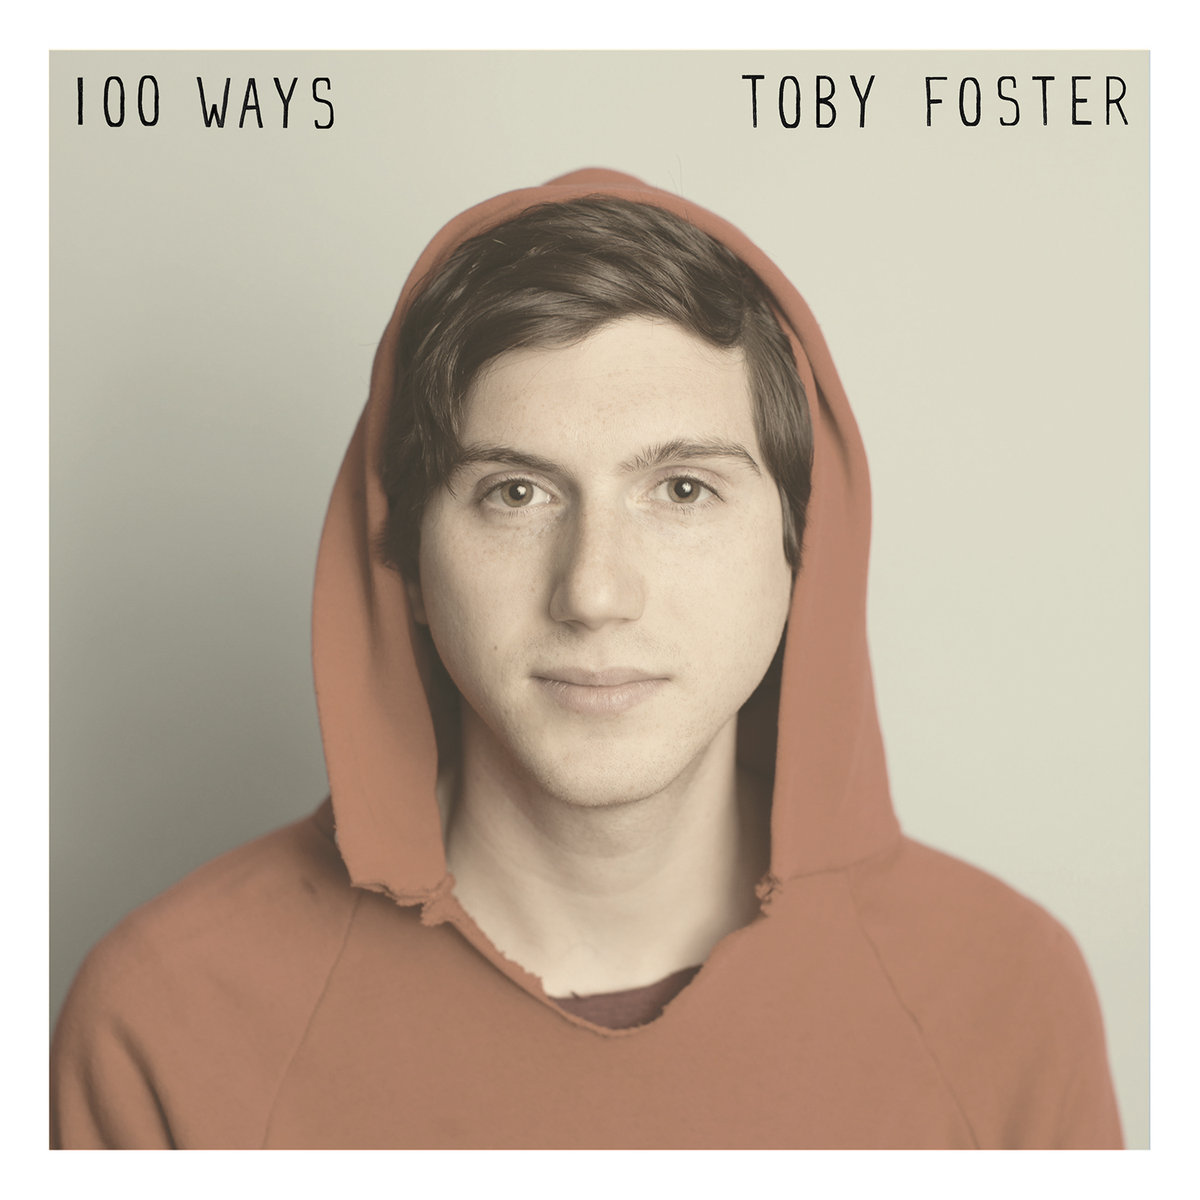 Toby Foster - 100 Ways LP